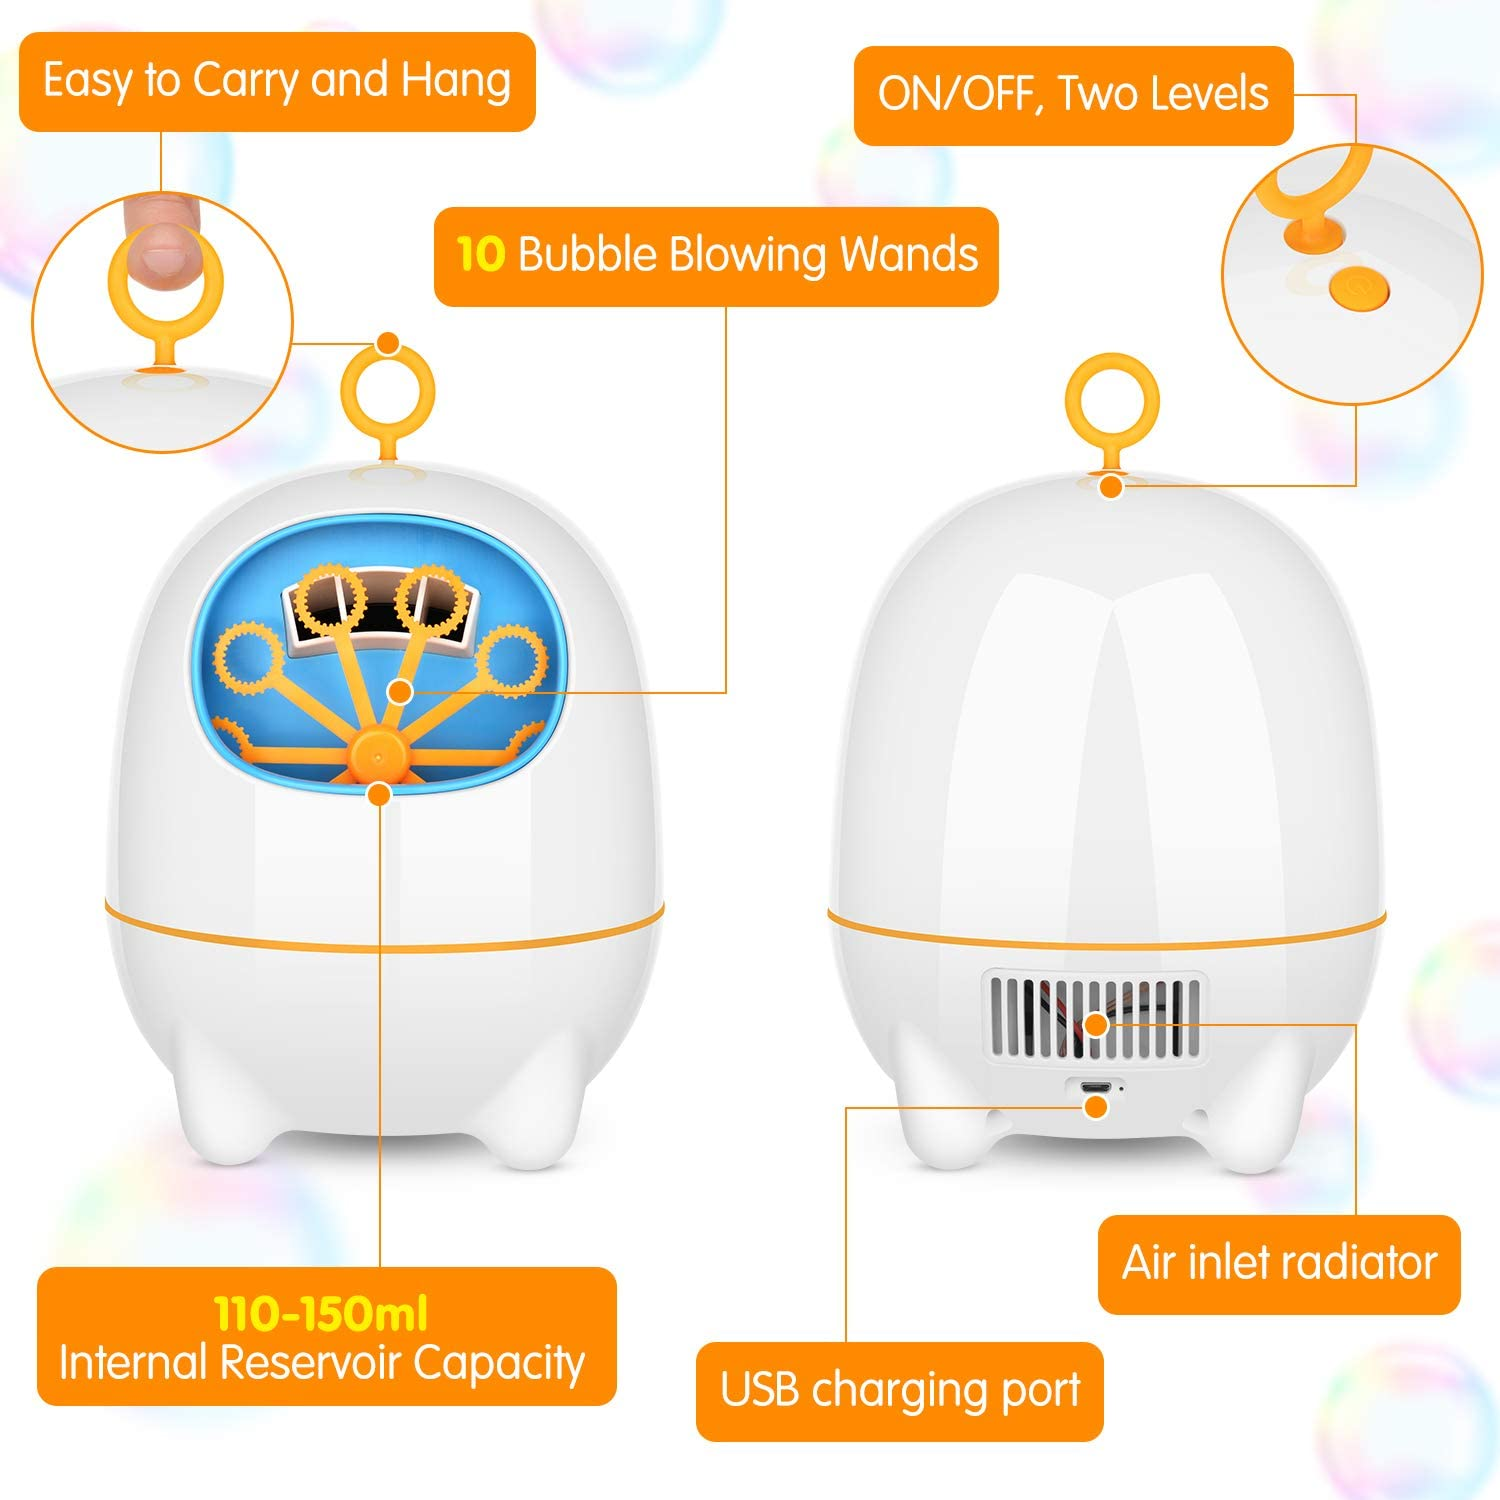 BATTOP Bubble Machine,Automatic Bubble Blower Machine for Kids with Bubbles Solutions and 2 Bubbles Blowing Speed Levels for Parties Outdoor /& Indoor,USB Charging,Simple /& Easy to Use